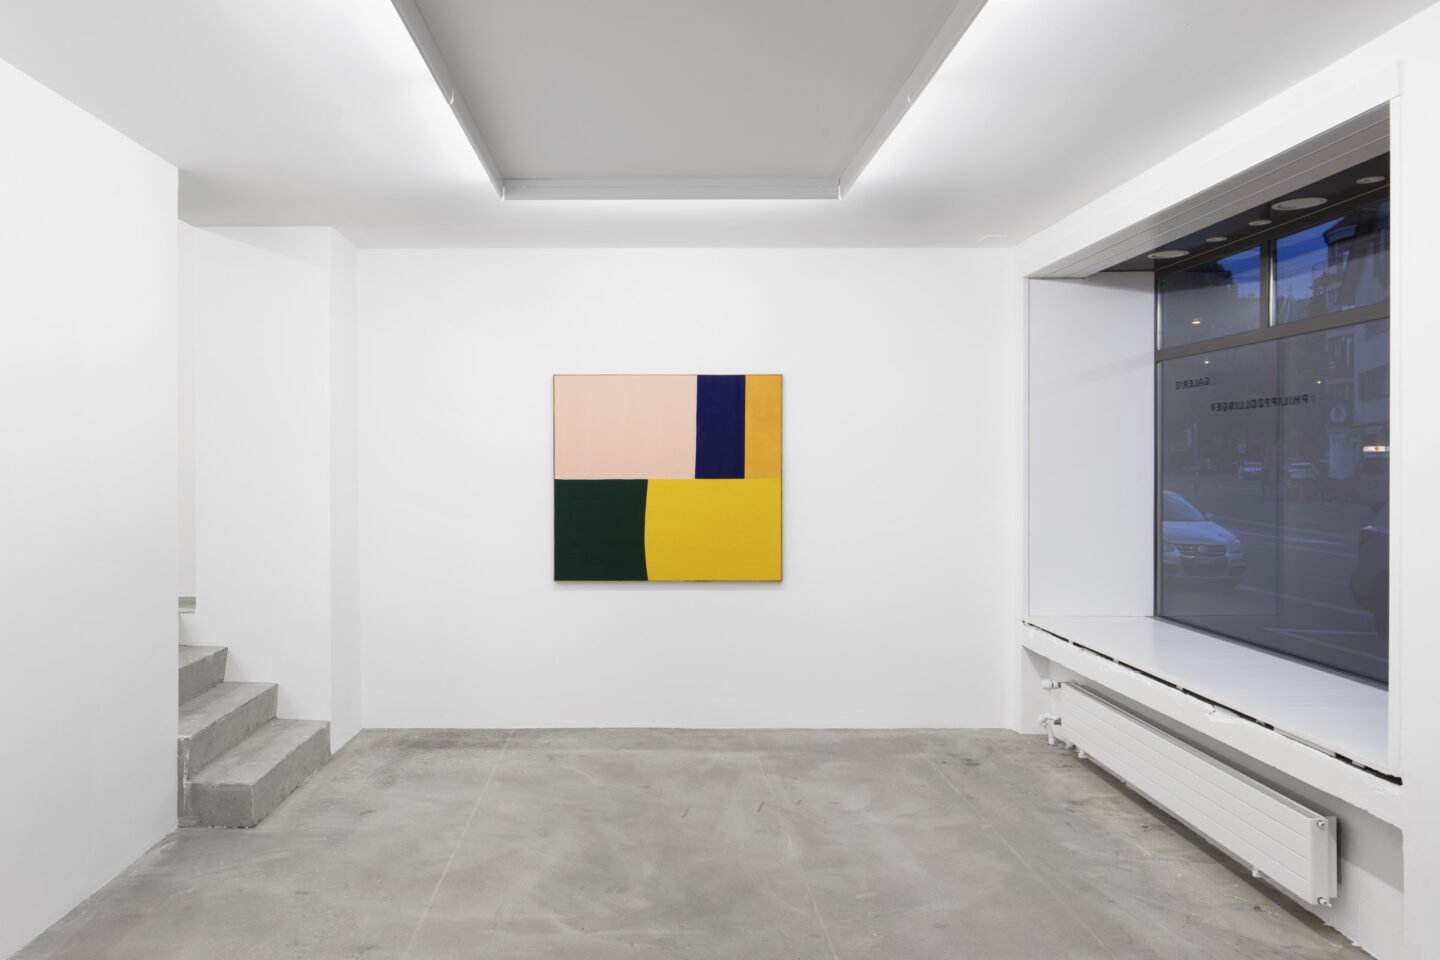 "Exhibition View Ethan Cook Soloshow ""Sets"" at GALERIE PHILIPPZOLLINGER, Zurich, 2019 / Photo: Photo: Conradin Frei / Courtesy the artist and GALERIE PHILIPPZOLLINGER"